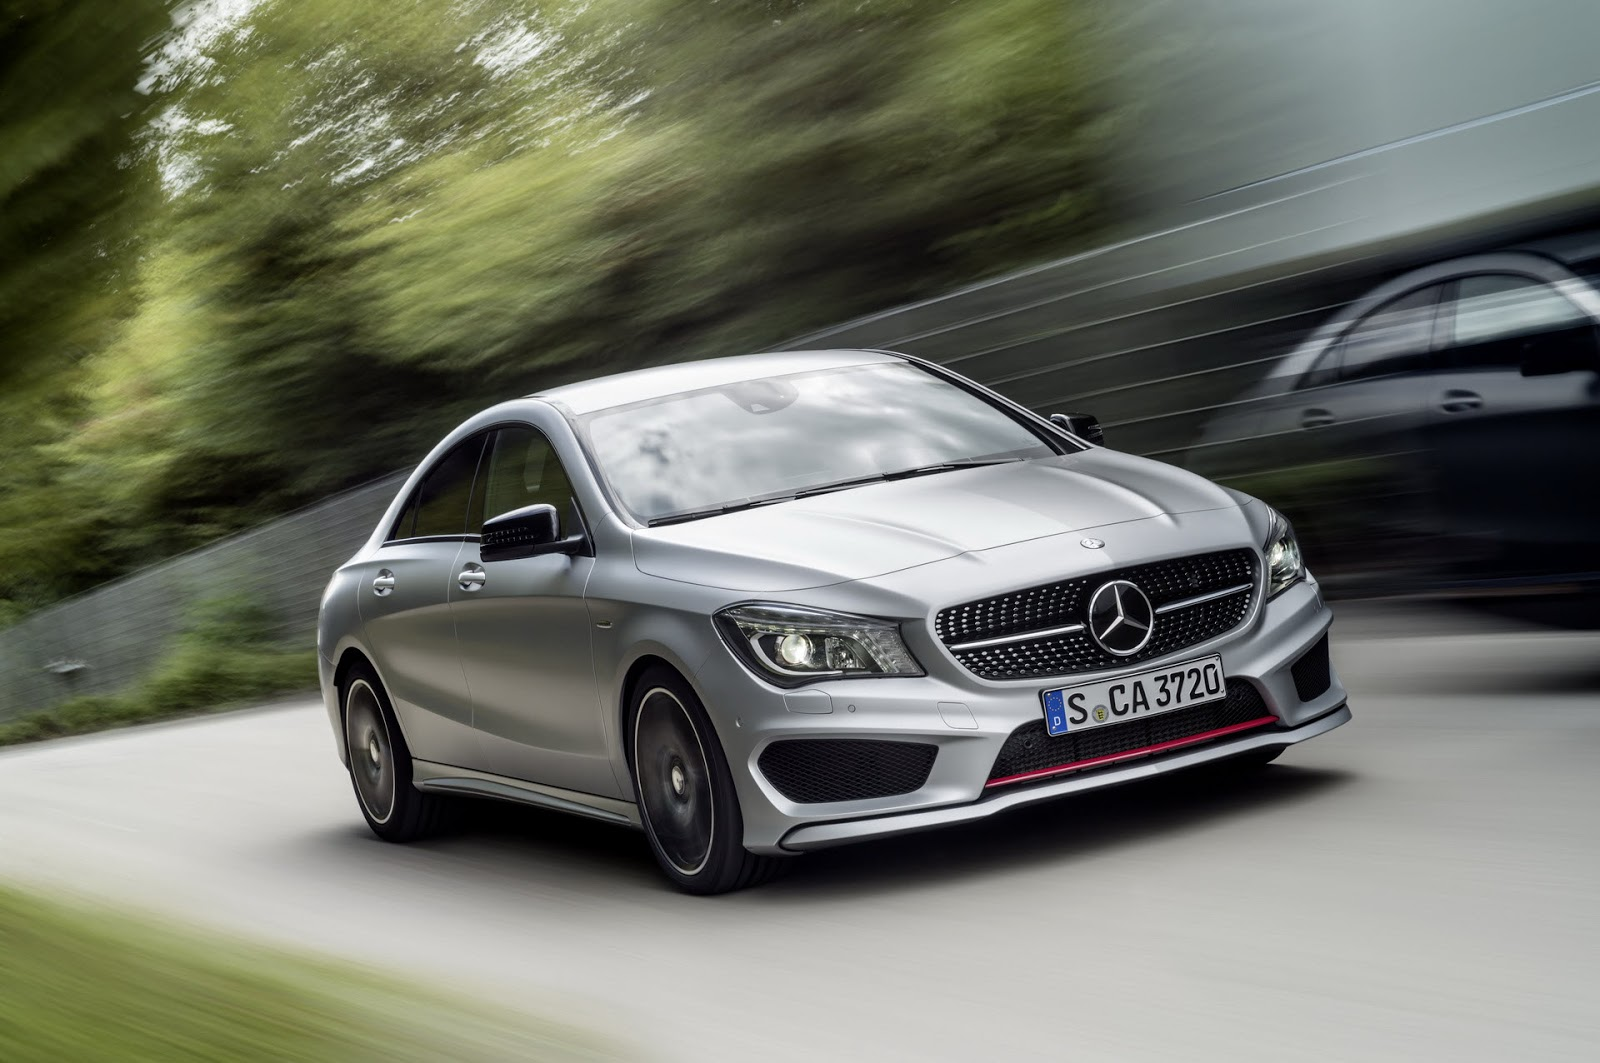 Mercedes benz cla 250 sport cla 45 amg racing series for Mercedes benze cla